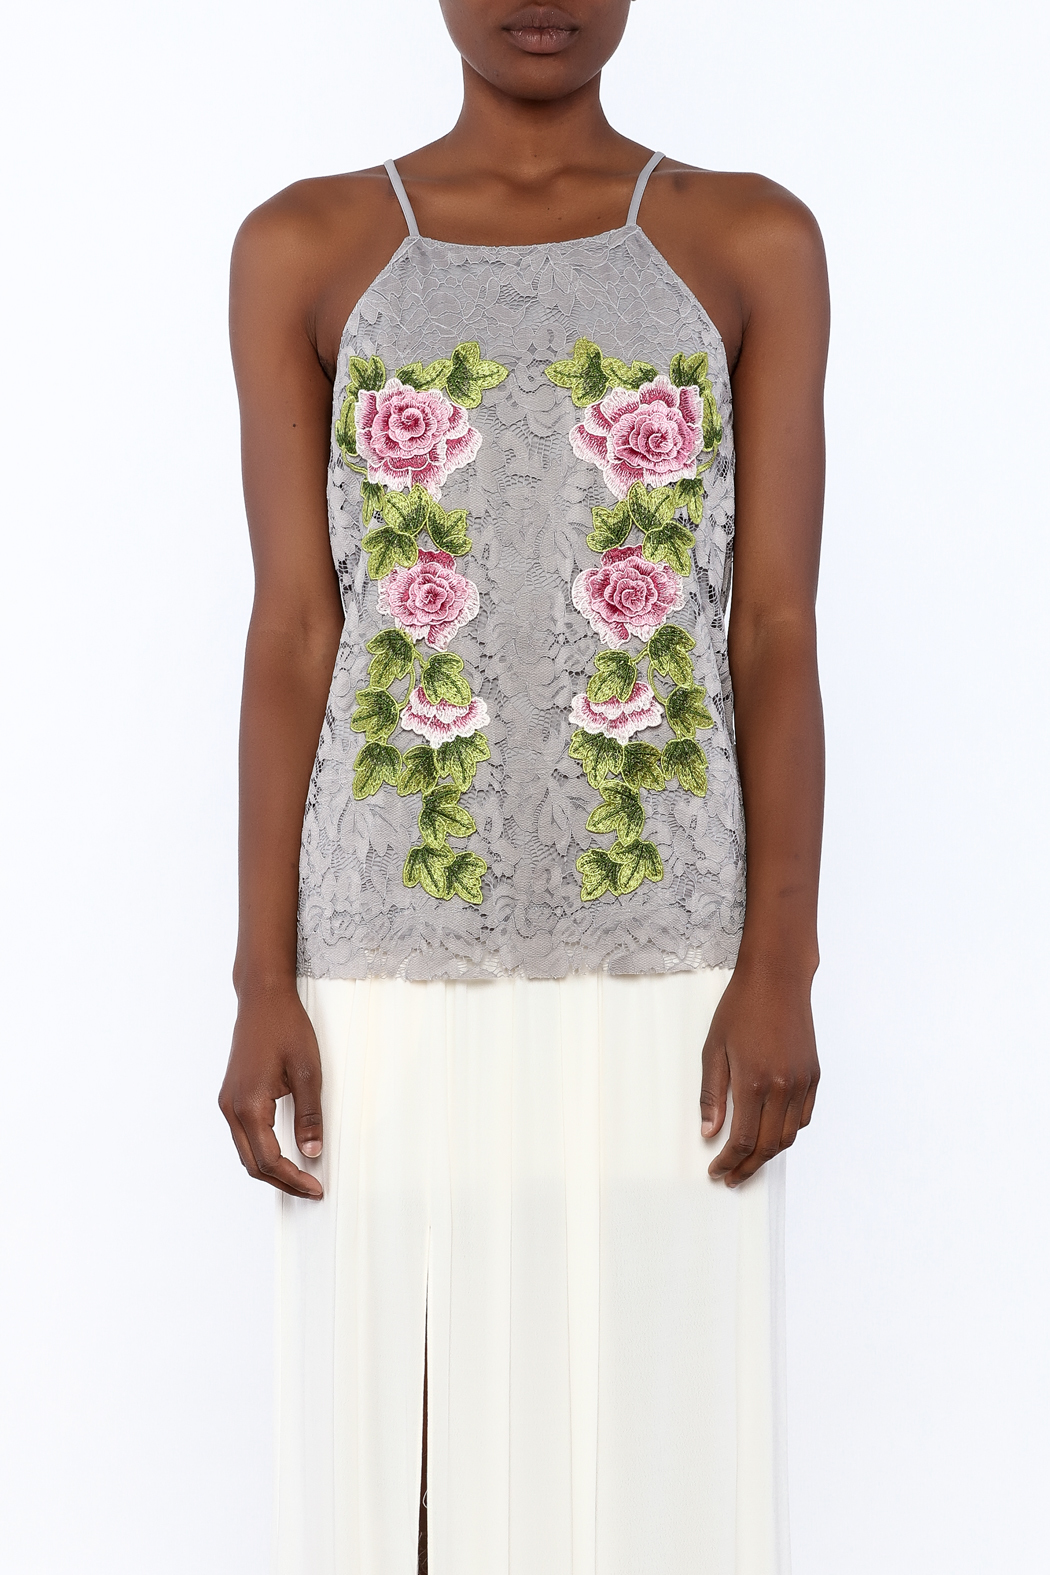 Gina Louise Cascading Roses Top - Side Cropped Image